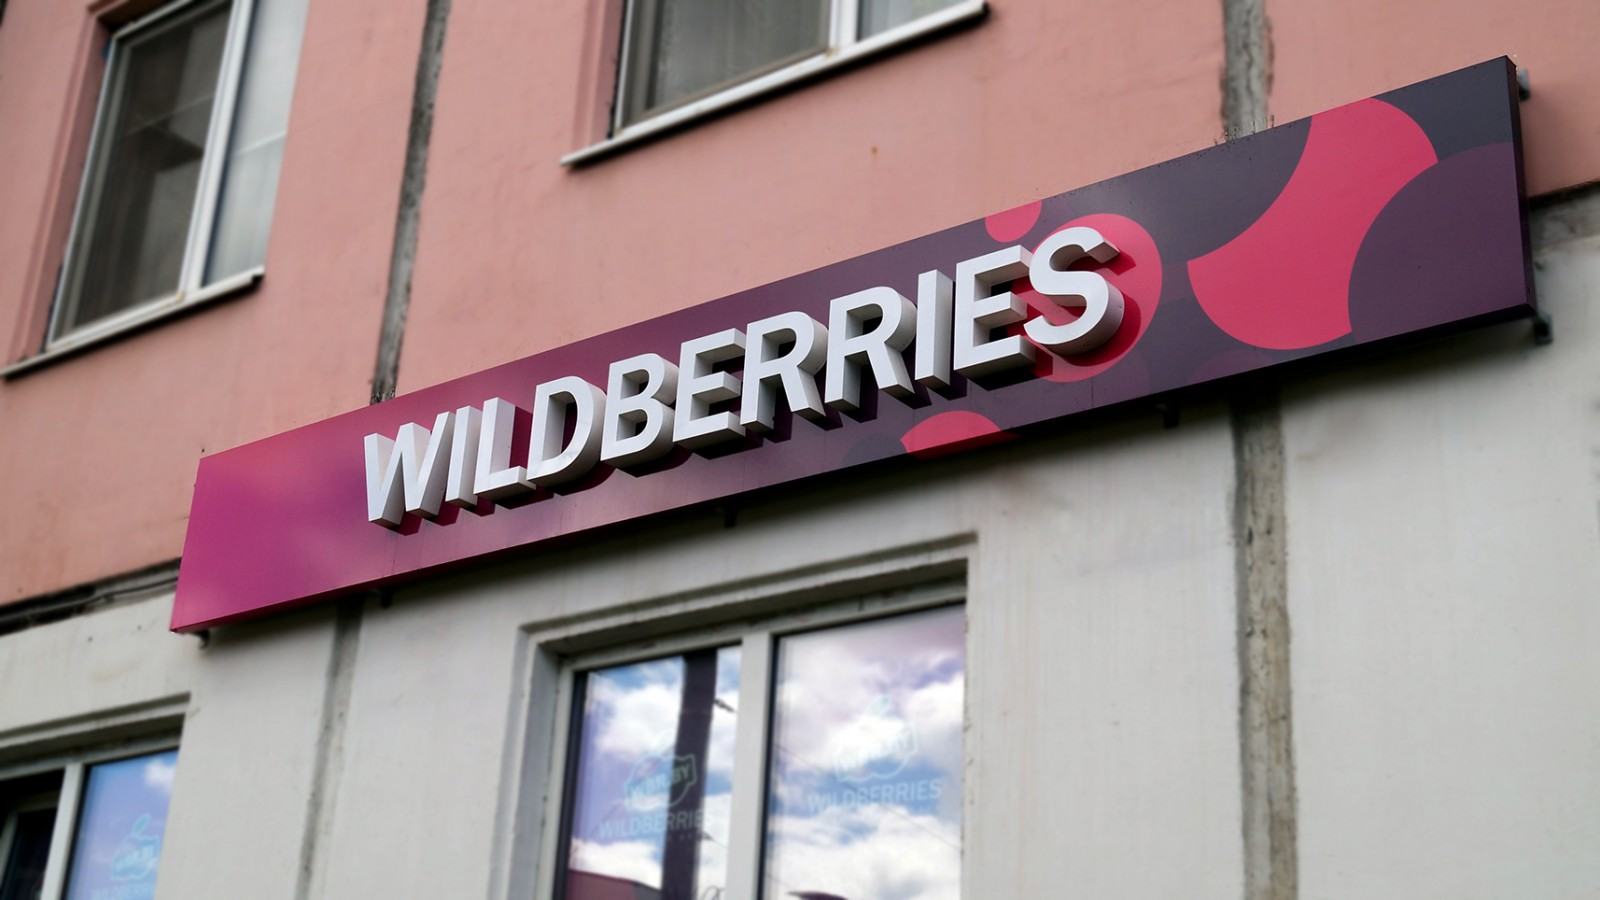 wildberries_5.jpg